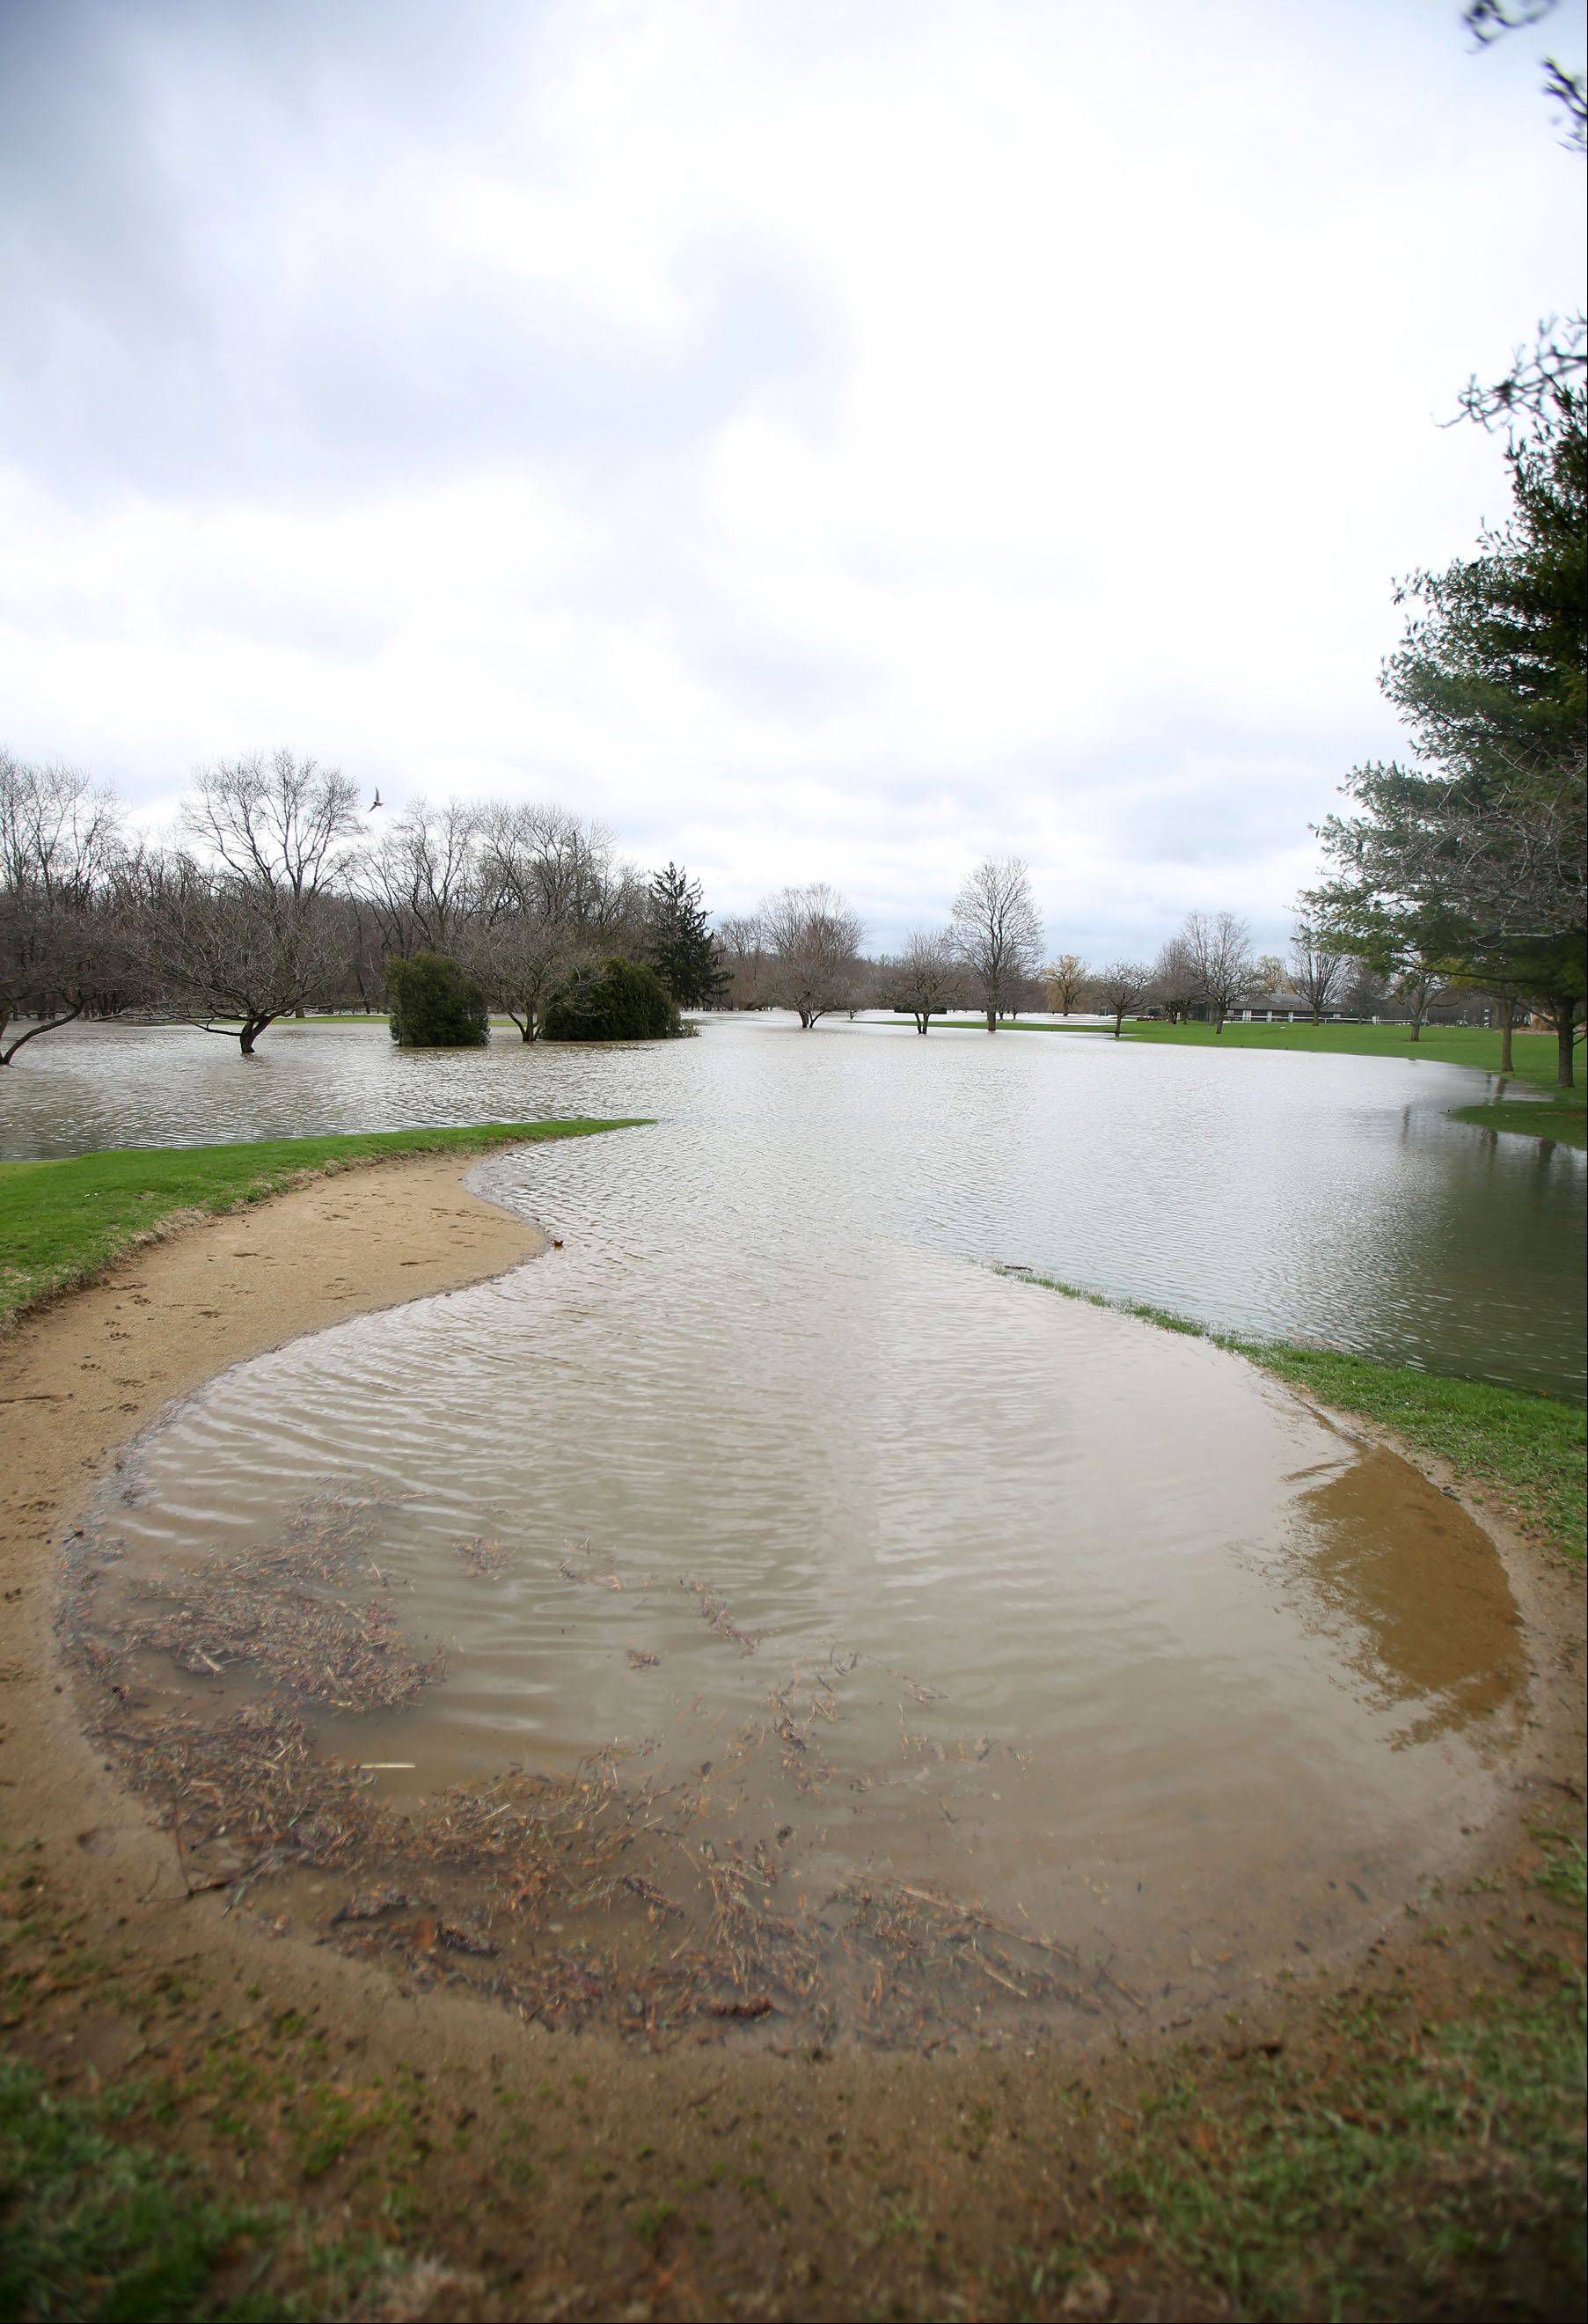 Much of the Riverside Golf Course in Libertyville is under water as the Des Plaines River overflowed it's banks Friday.